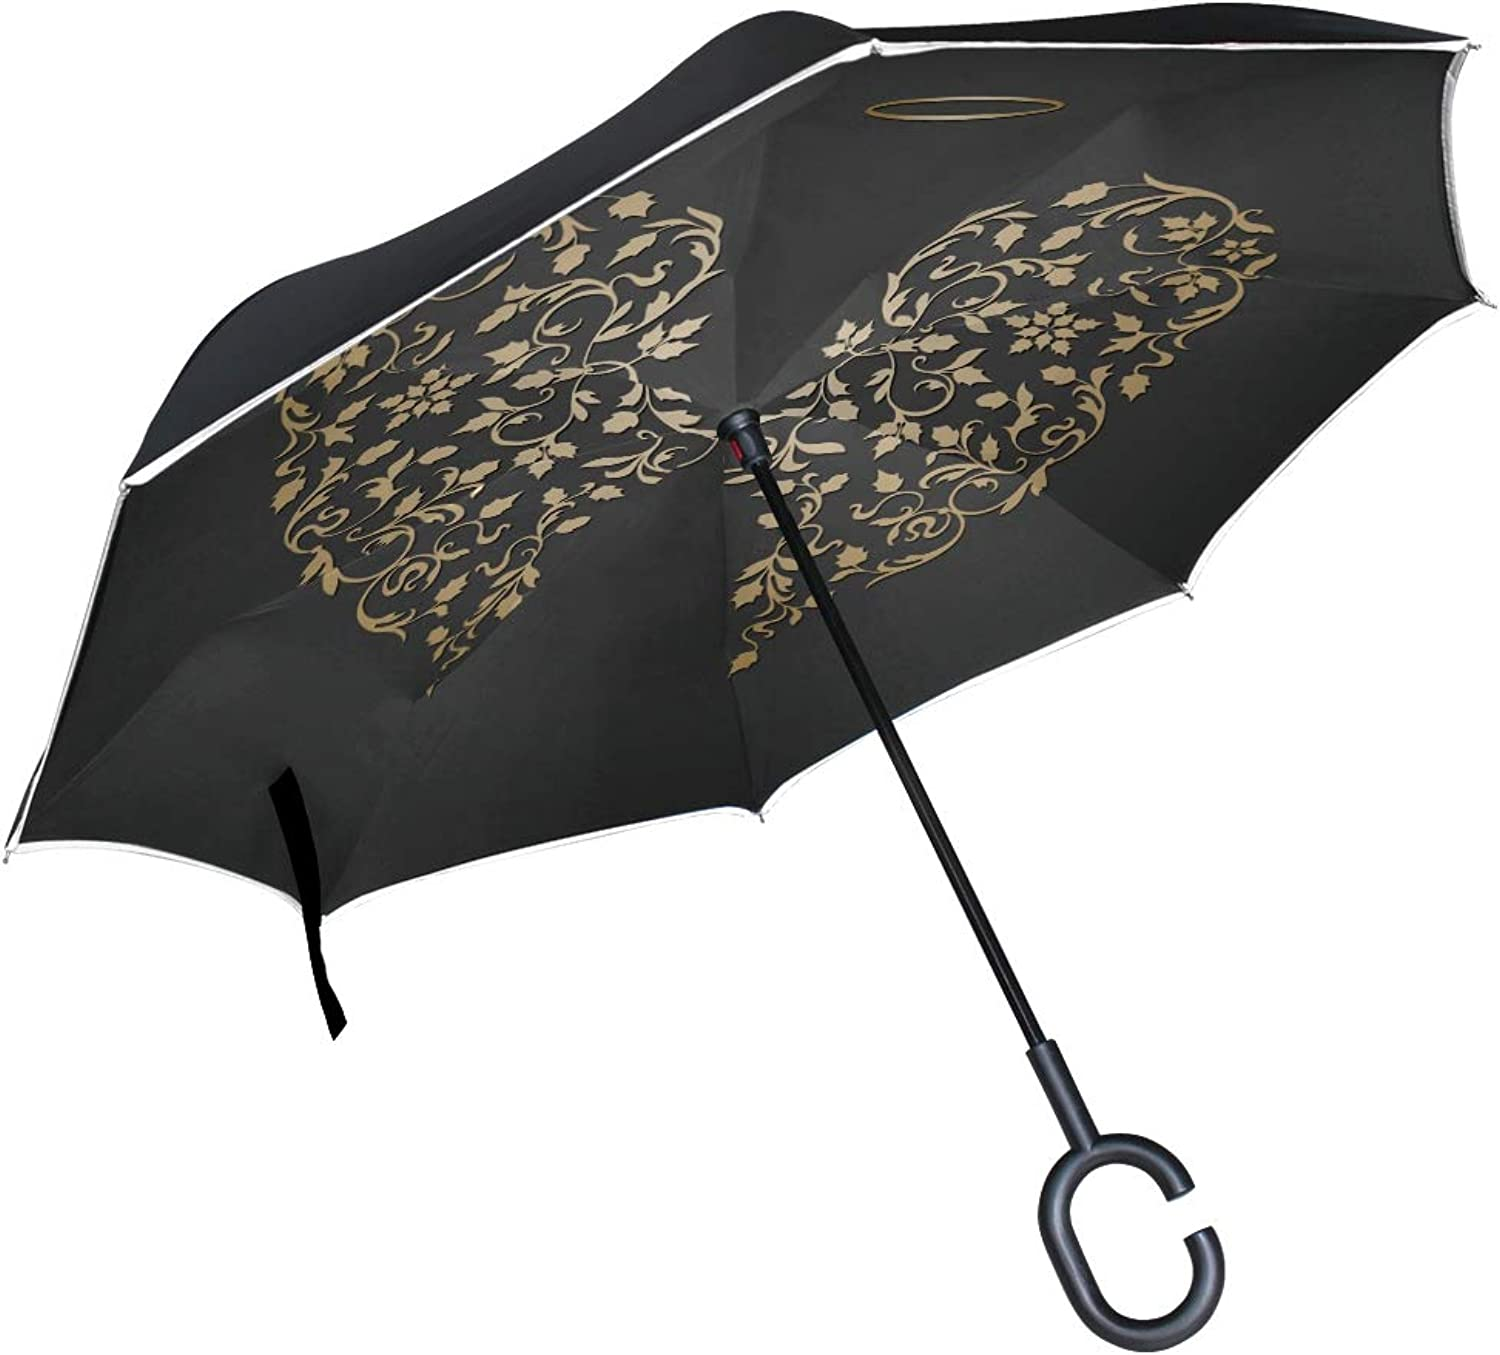 Double Layer Ingreened Angel Design Elements golden Wings Halo Umbrellas Reverse Folding Umbrella Windproof Uv Predection Big Straight Umbrella for Car Rain Outdoor with CShaped Handle